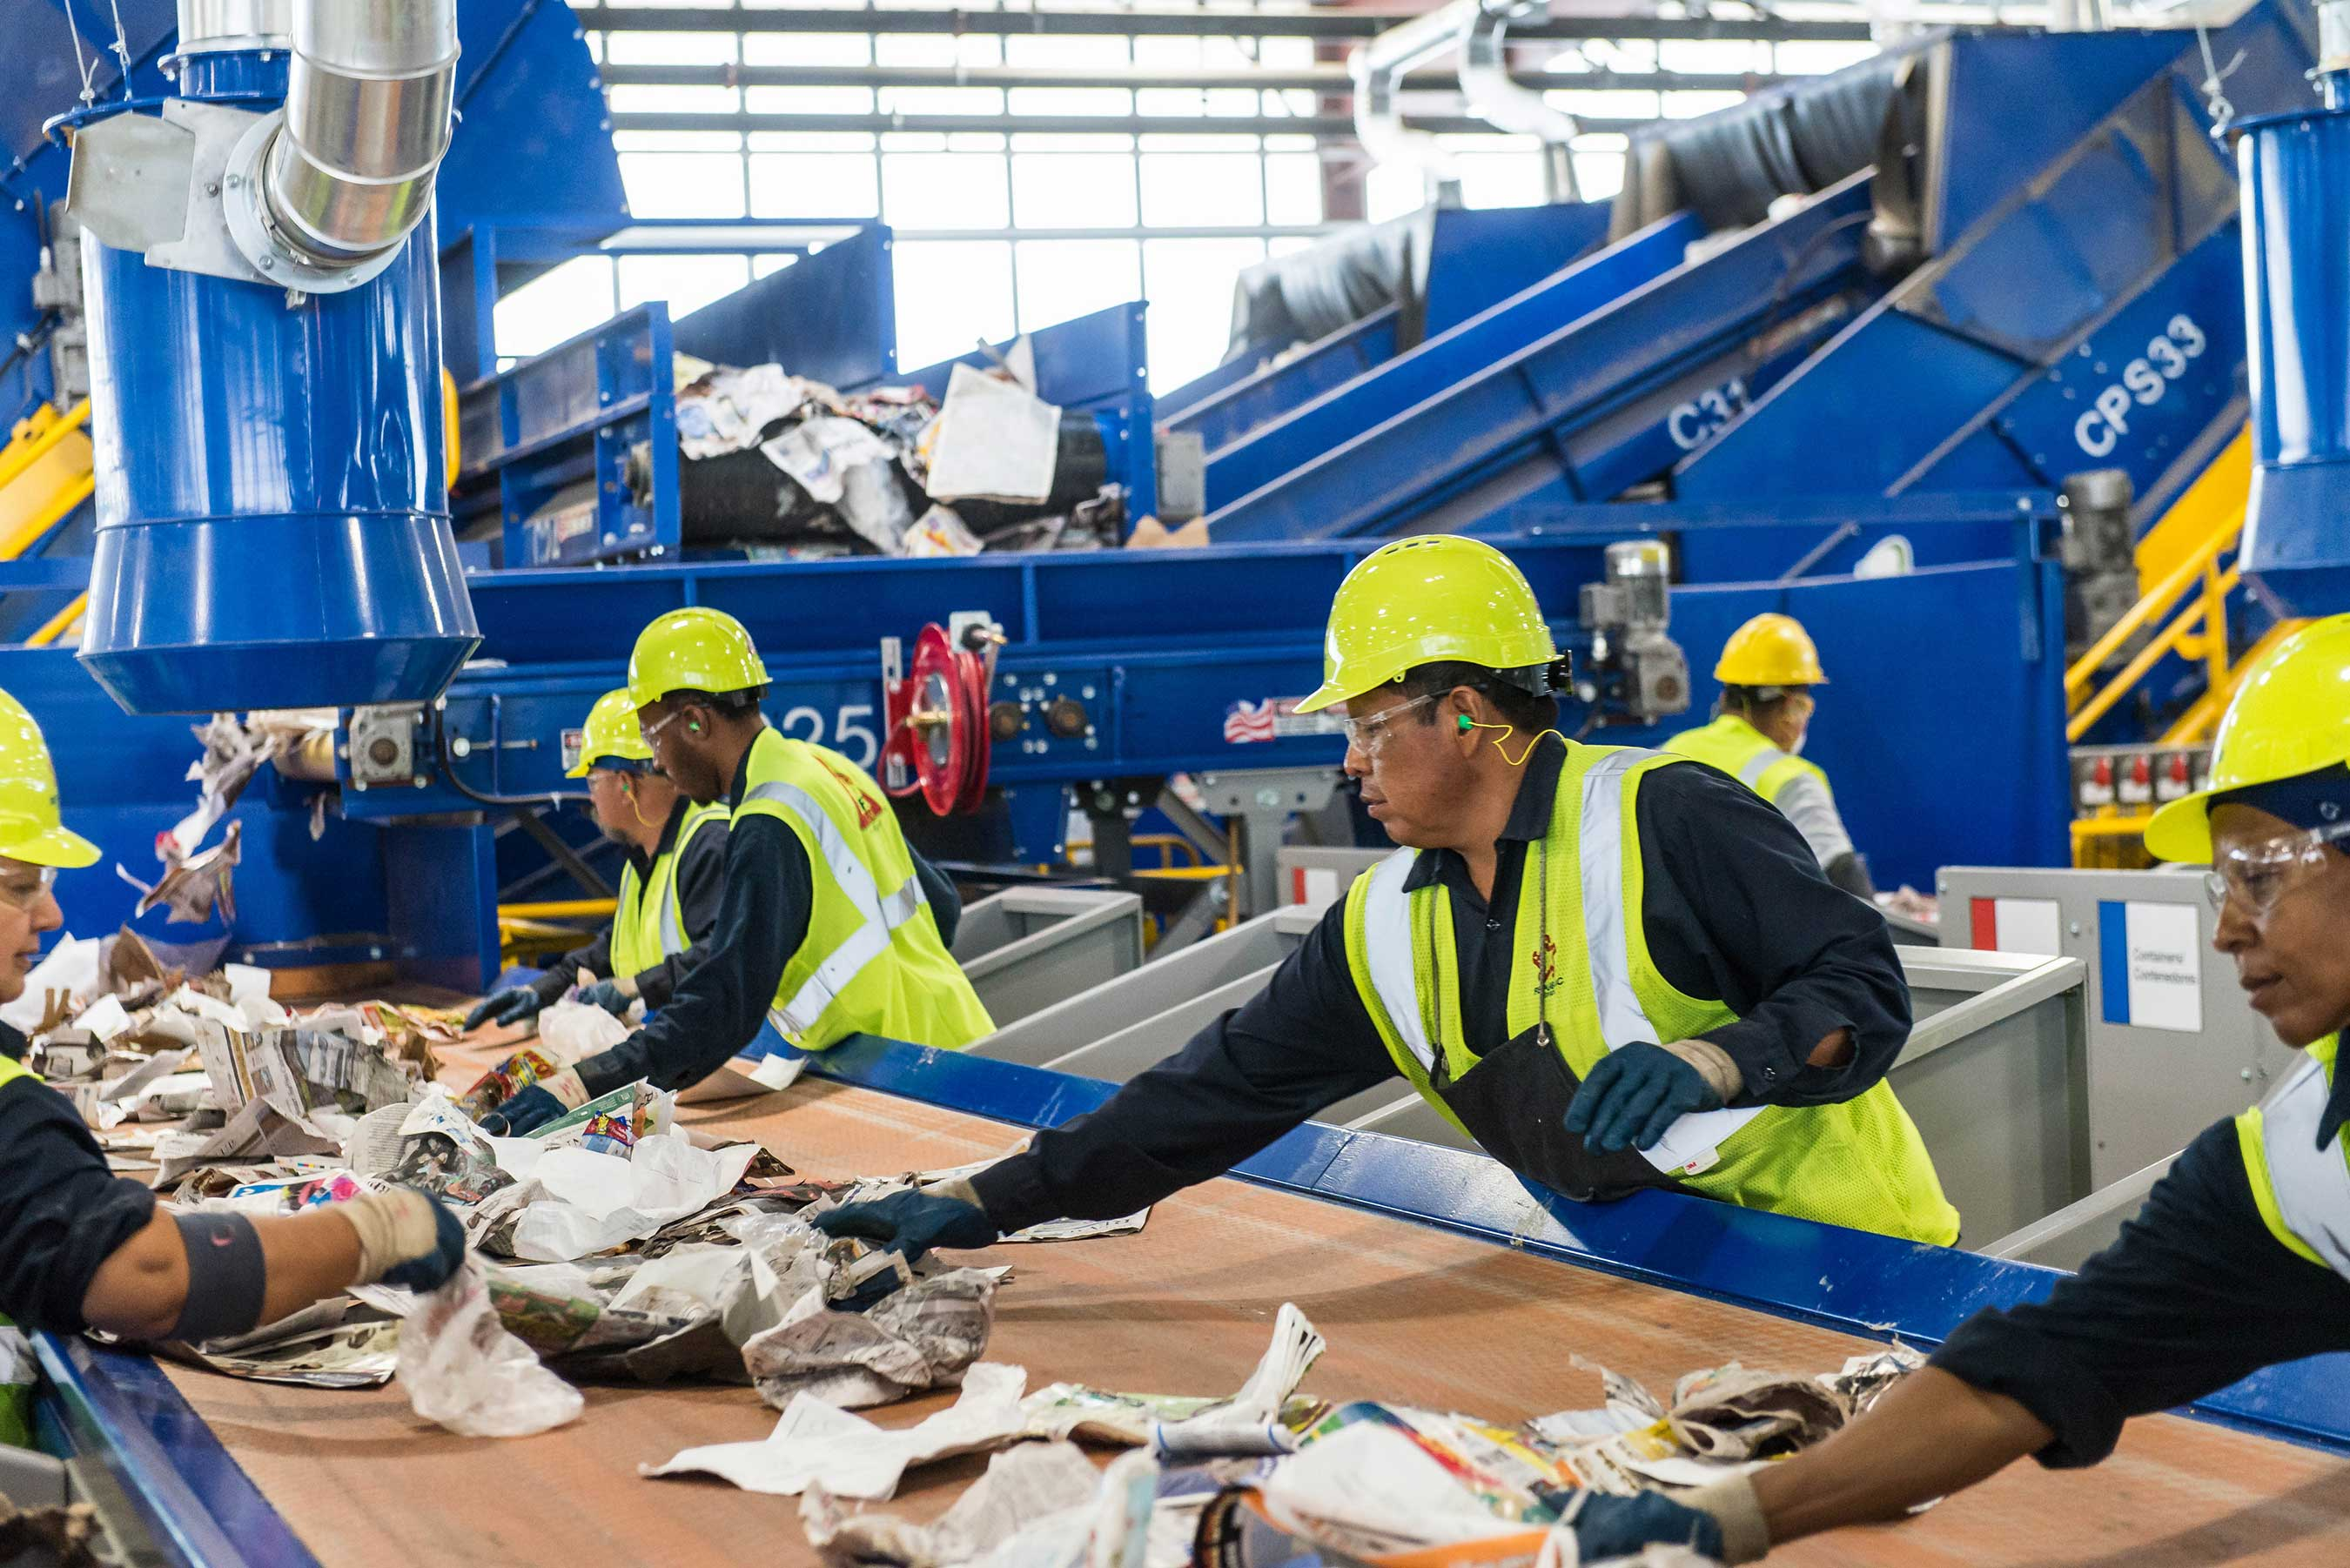 Republic recognizes the responsibility we have to continually innovate our materials management process, and further enable our customers and communities to achieve their sustainability goals.